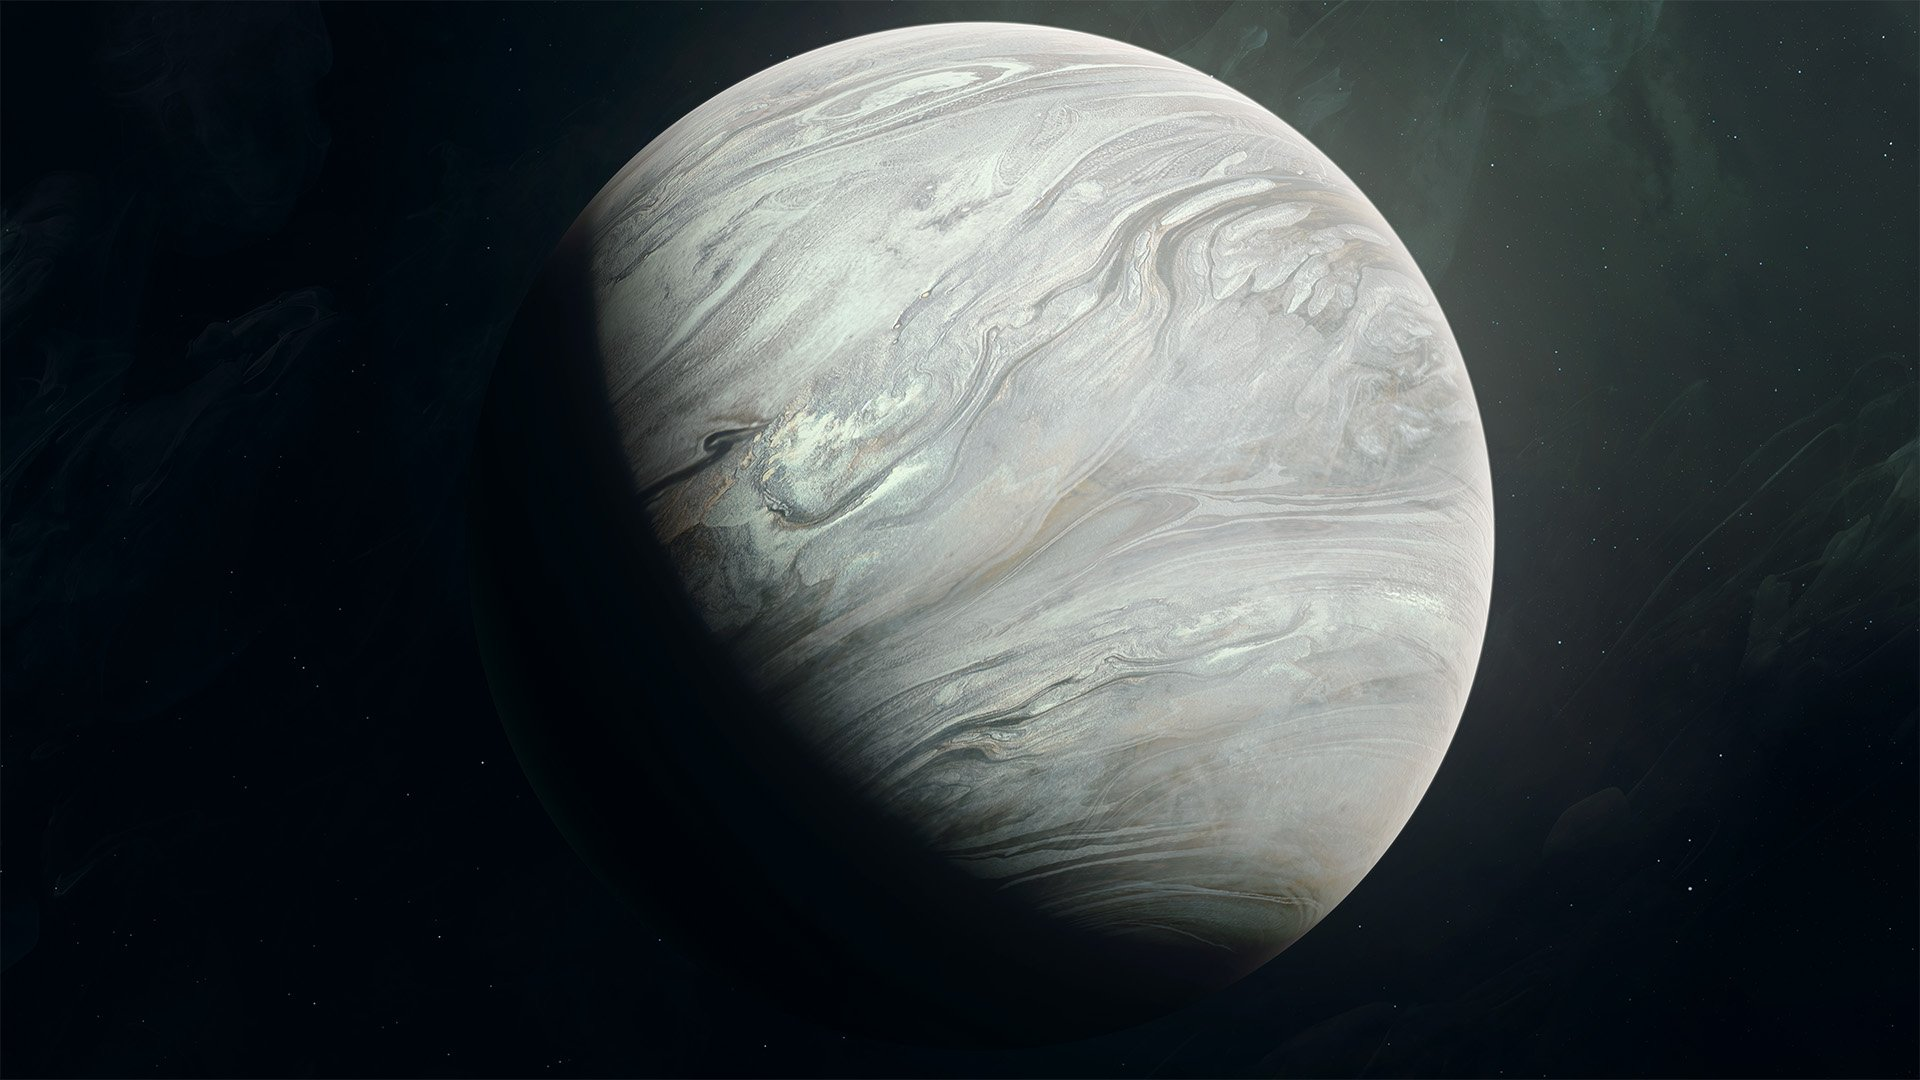 Solid Gas Giant